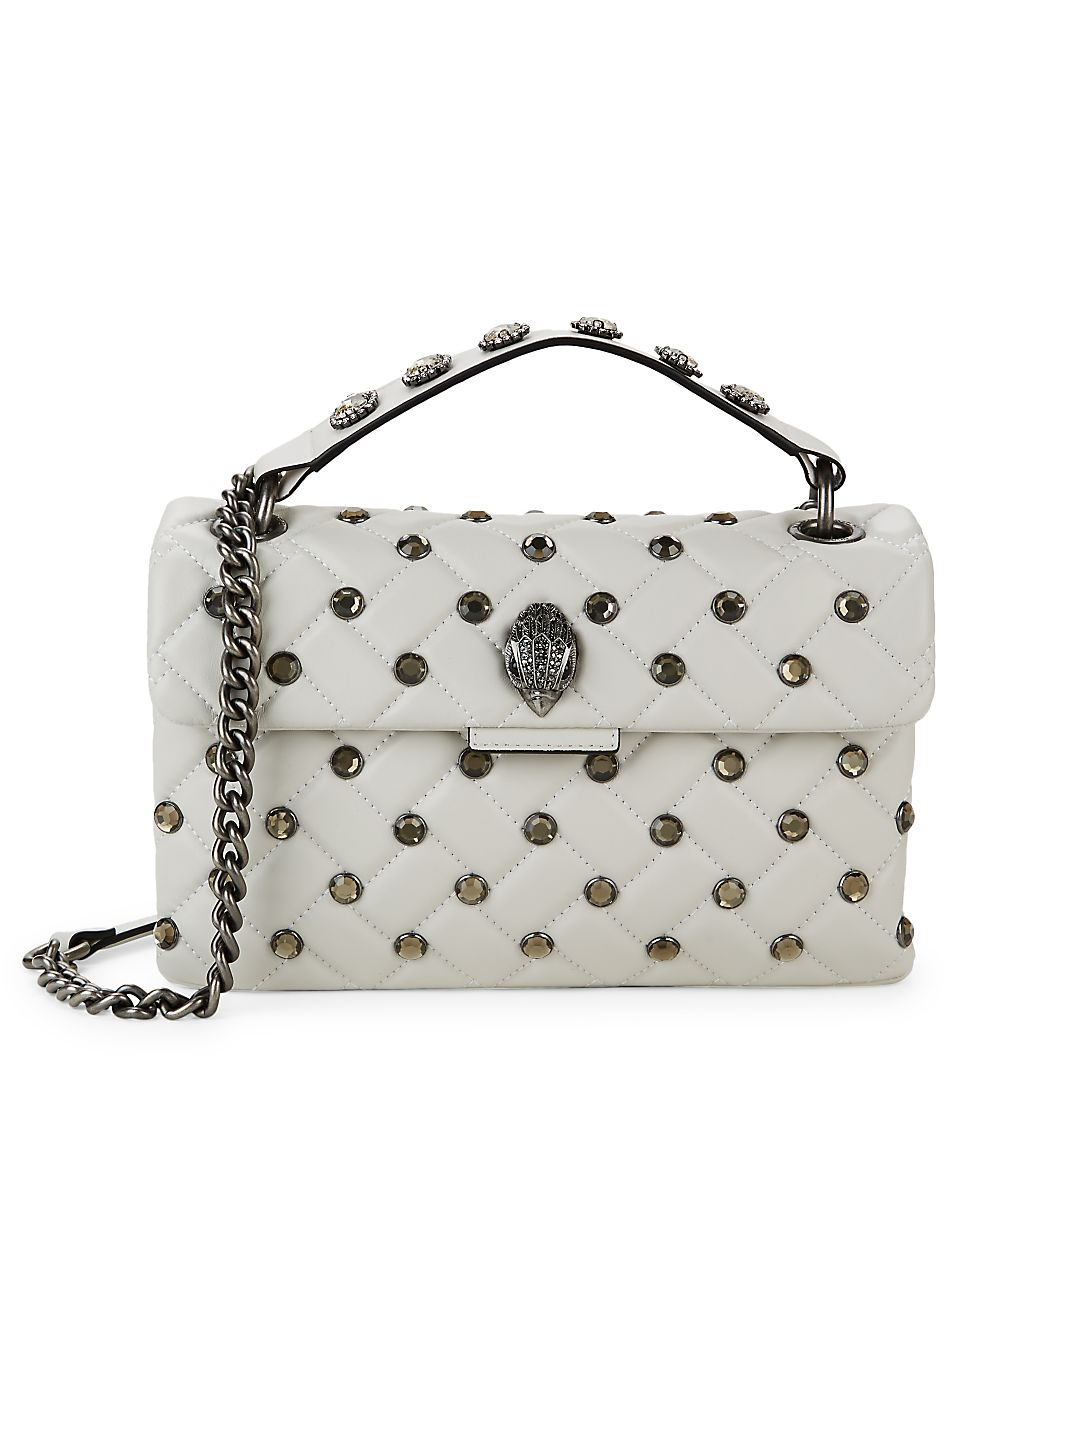 Studded Kensington Leather Crossbody Bag